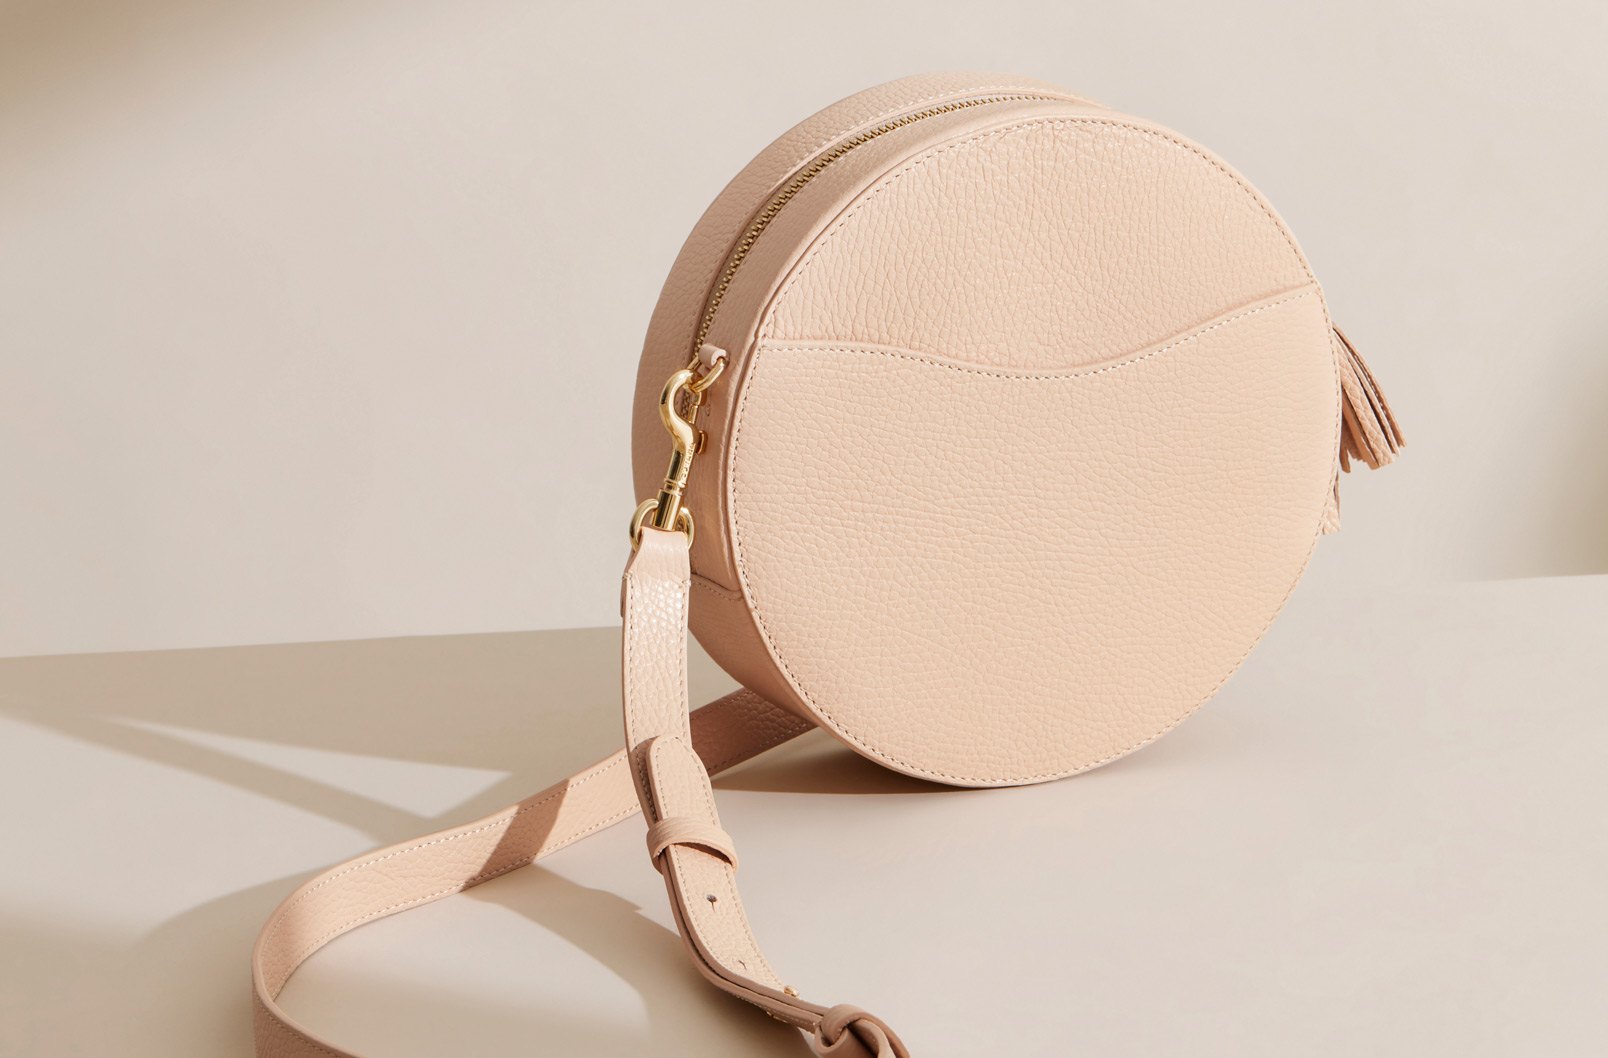 Cuyana Curved Crossbody in Blush standing on own